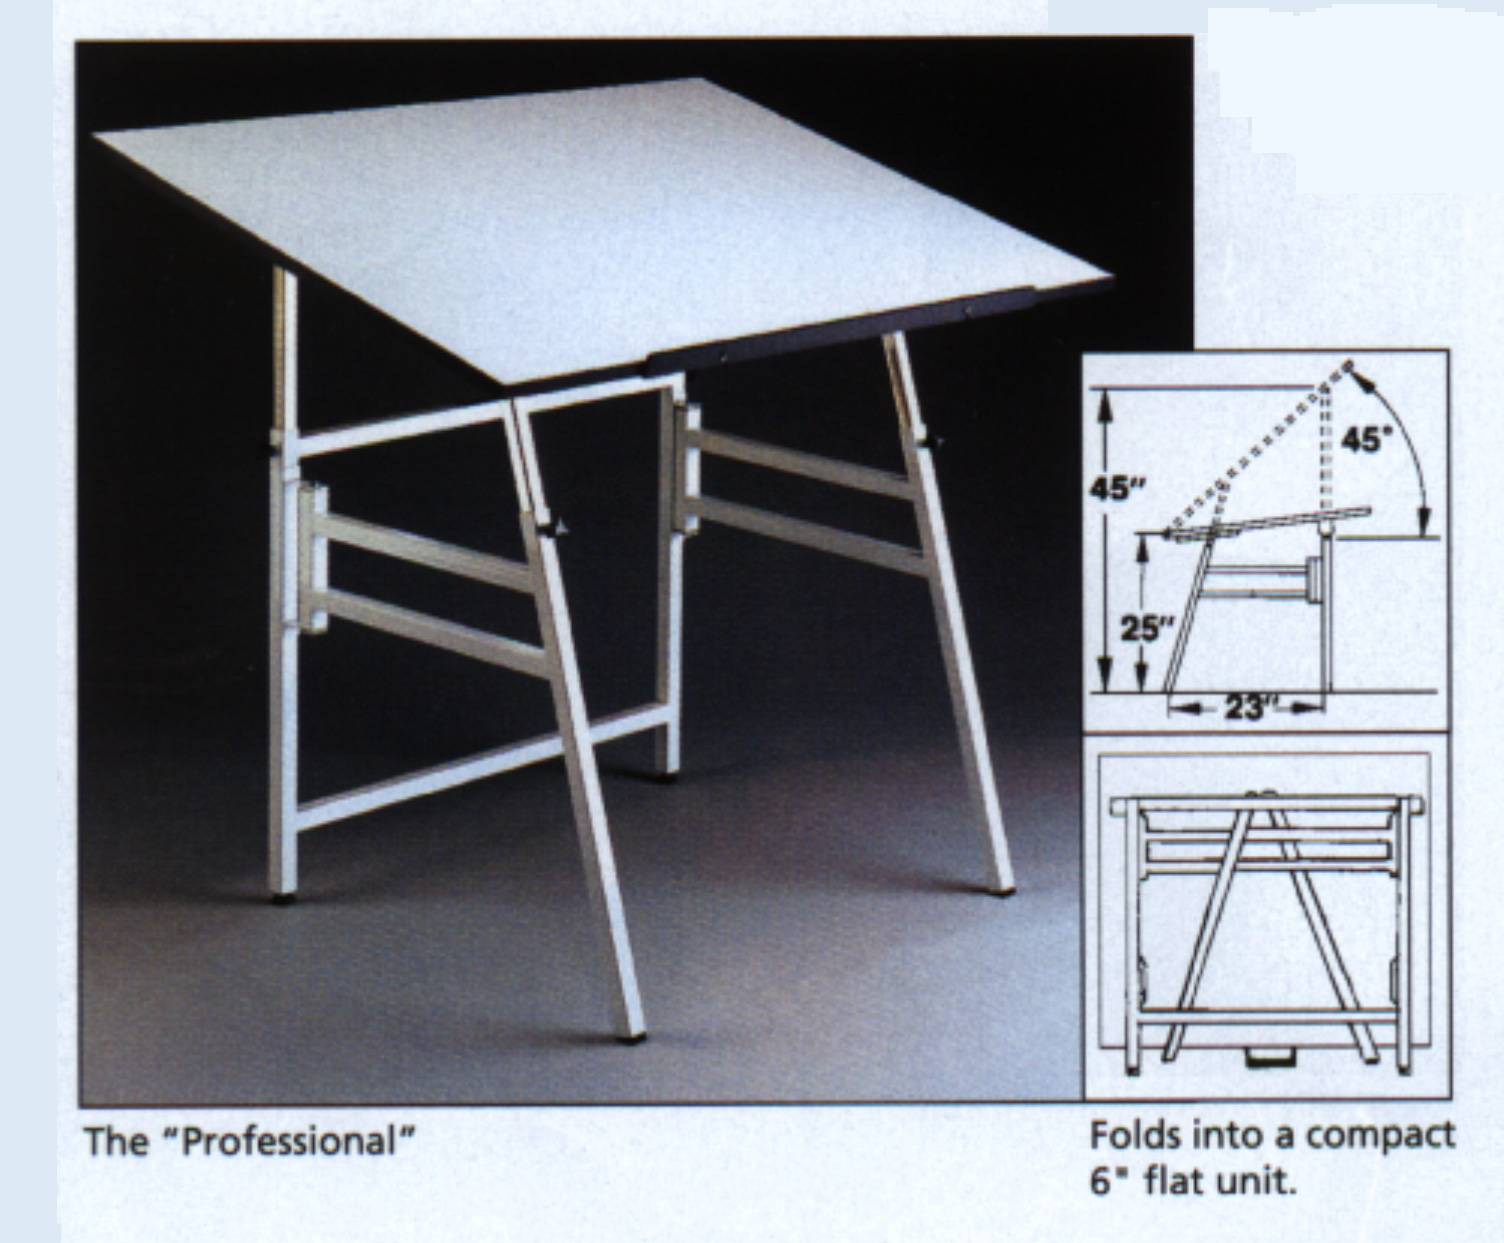 Drafting table dimensions - Pro Folding Drawing Table